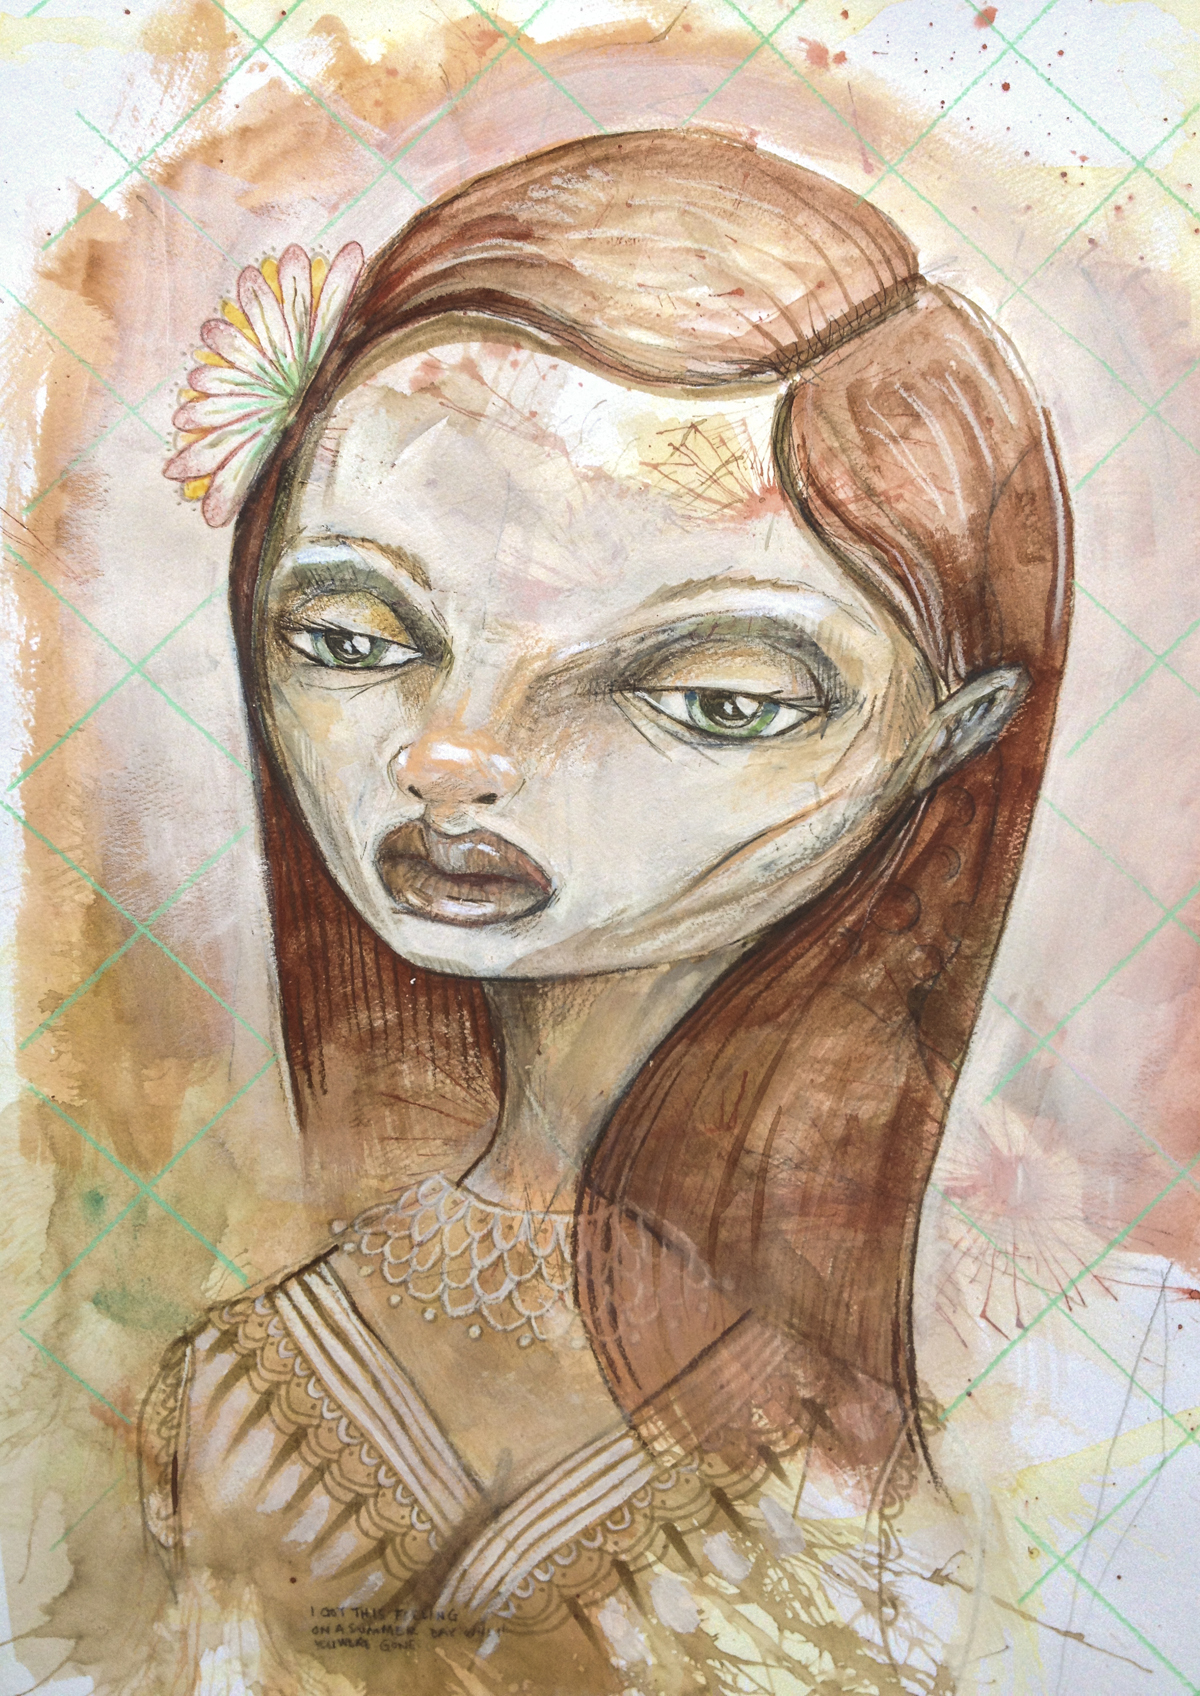 She-Was-A-HallucinationWatercolor-graphite-spray-paint-acrylic-paint-on-watercolor-paper-18-x-24-inchesJTI-017G.jpg